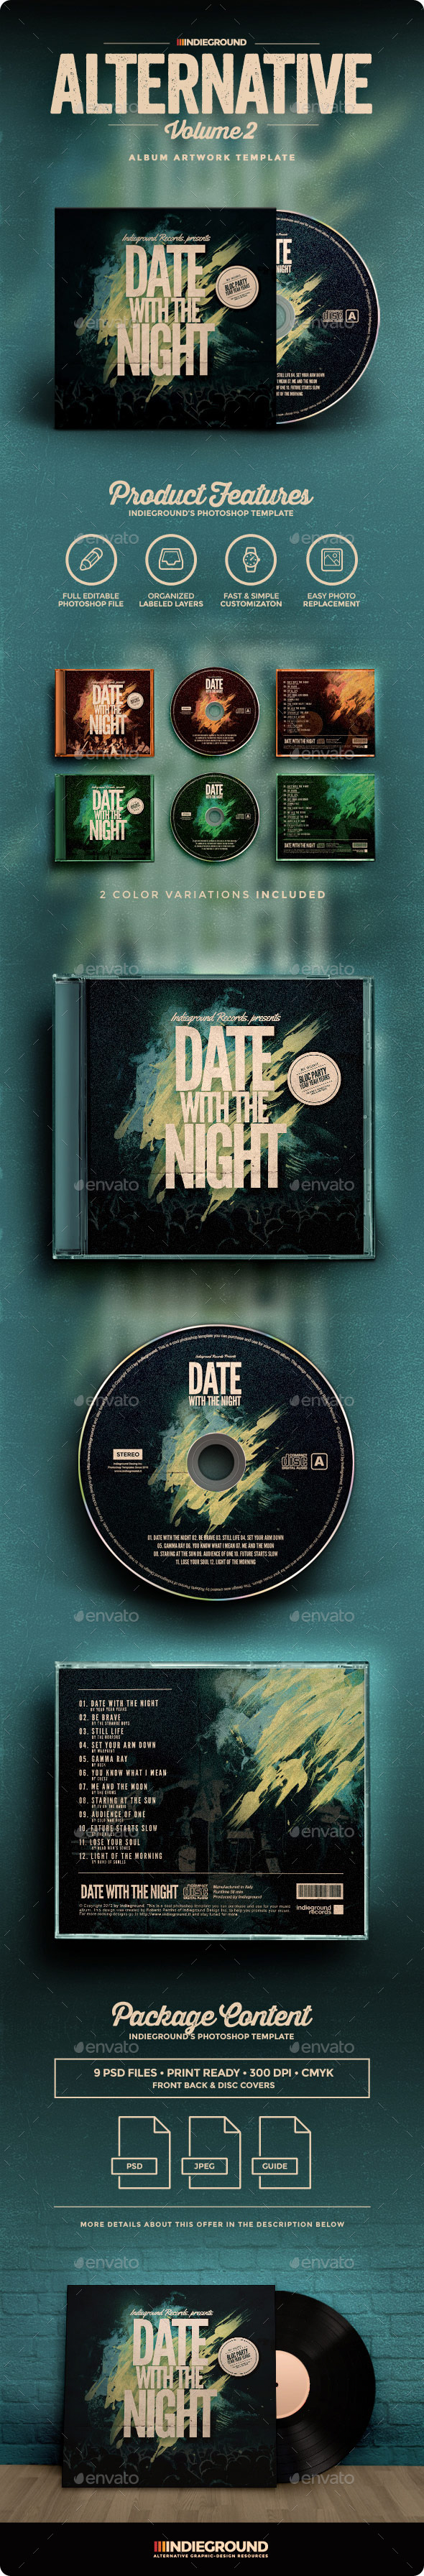 Alternative CD Album Artwork Vol. 2 - CD & DVD Artwork Print Templates